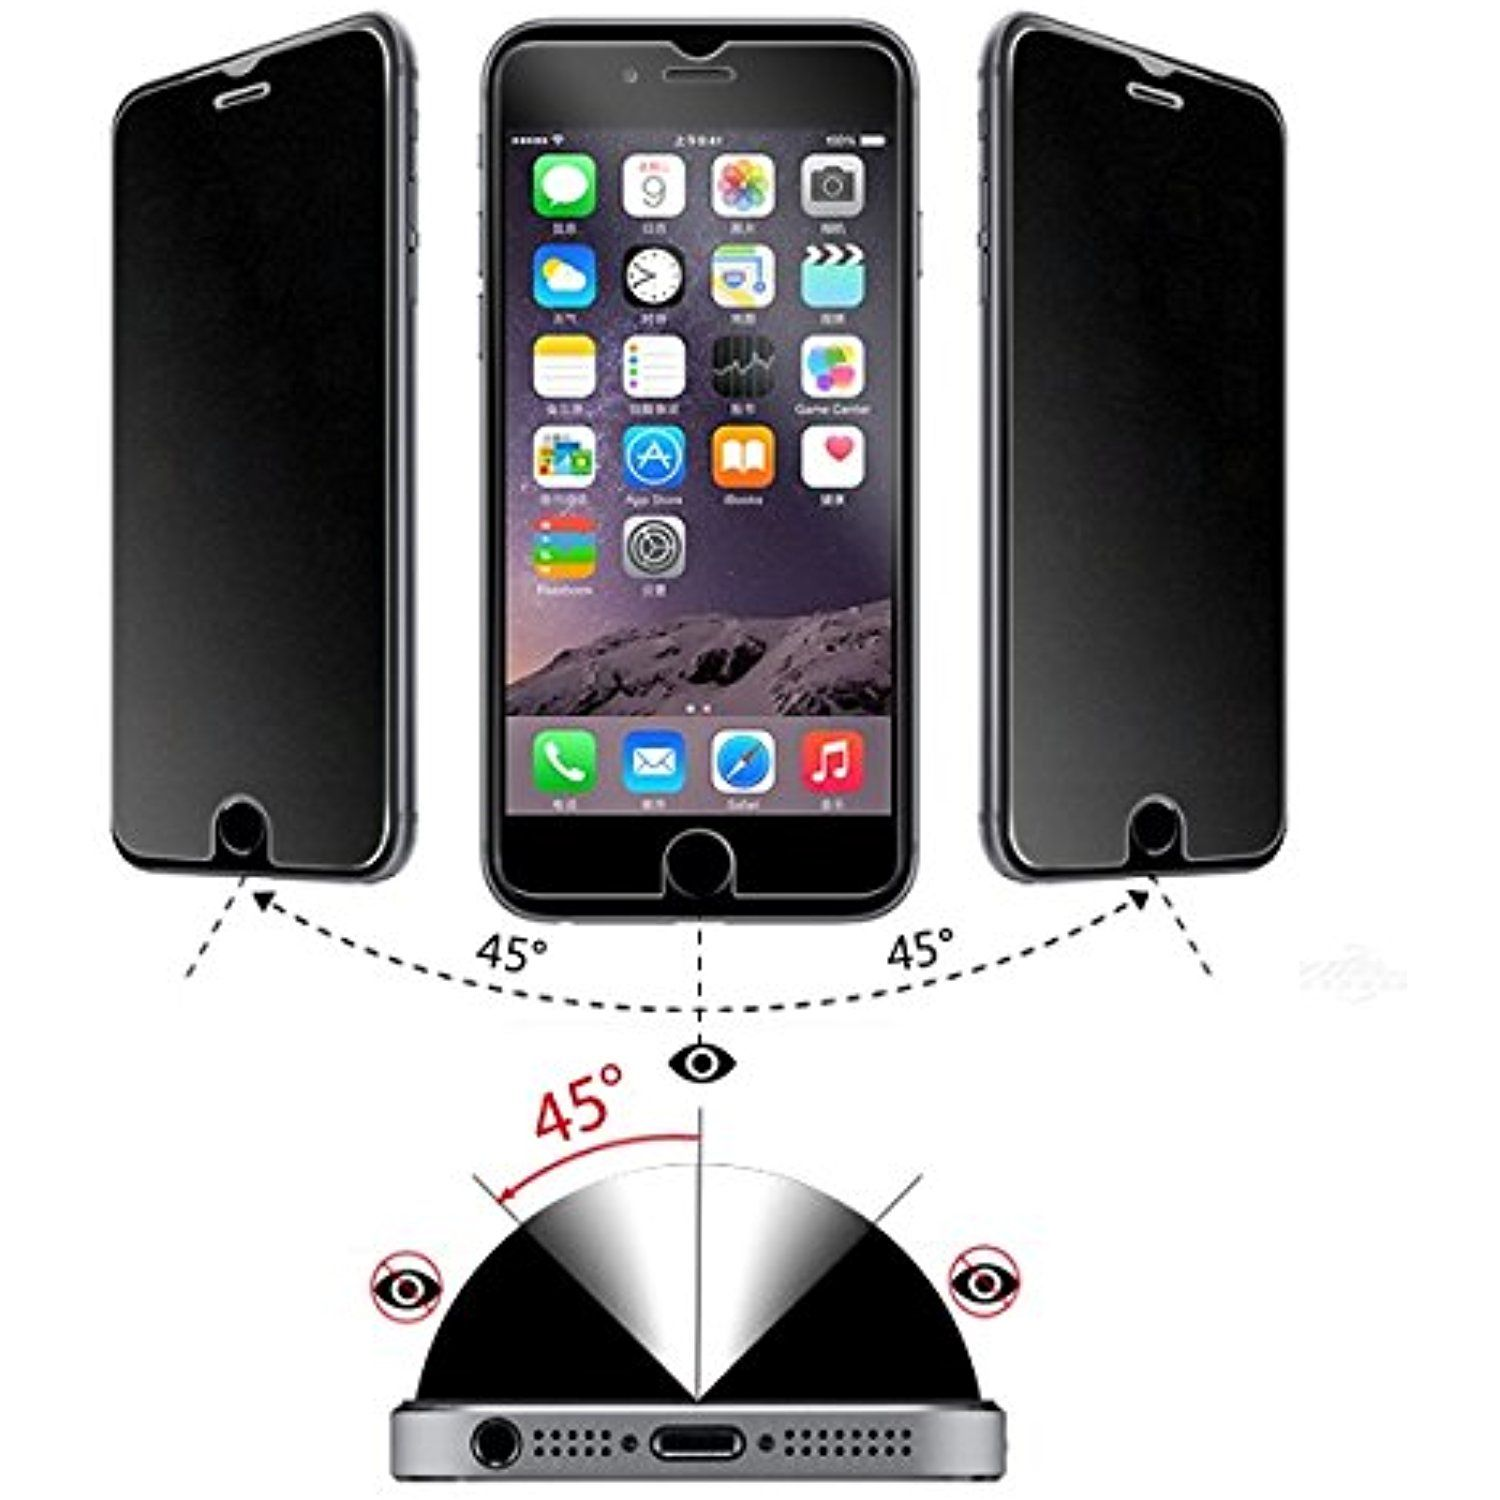 InfiniTech Premium Privacy Ballistic Tempered Glass Screen Protector for iPhone Apple 5 5c 5s